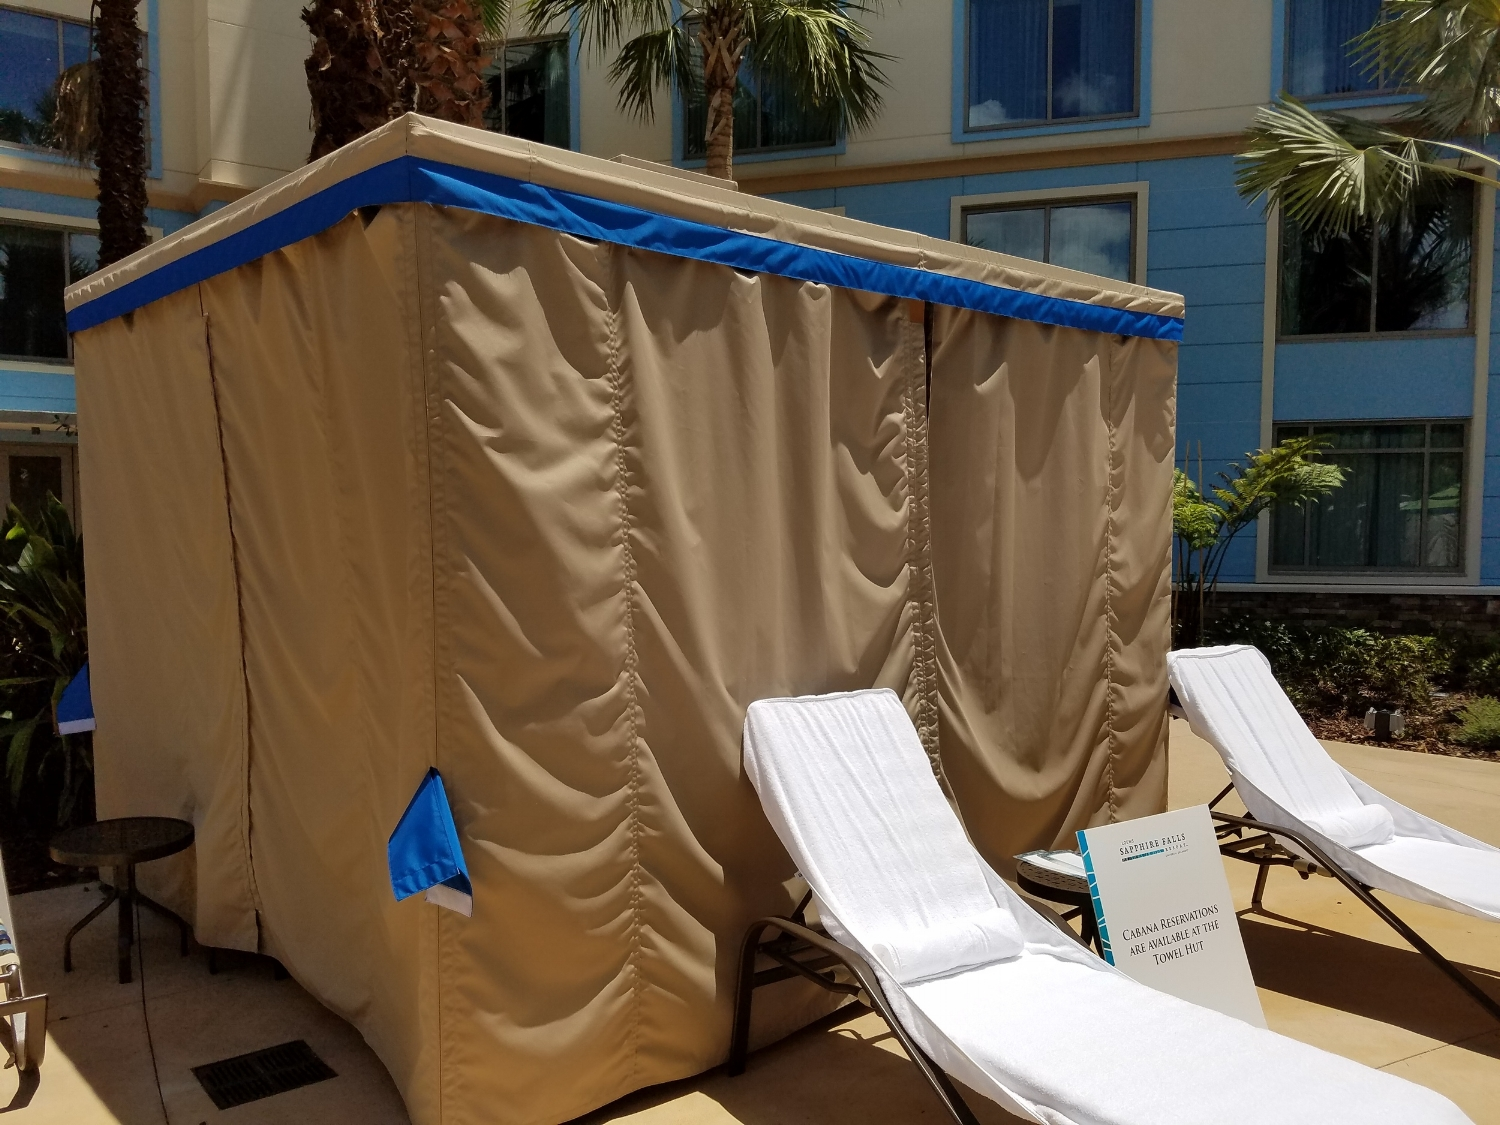 Cabana Available for Rent at Loews Sapphire Falls Resort